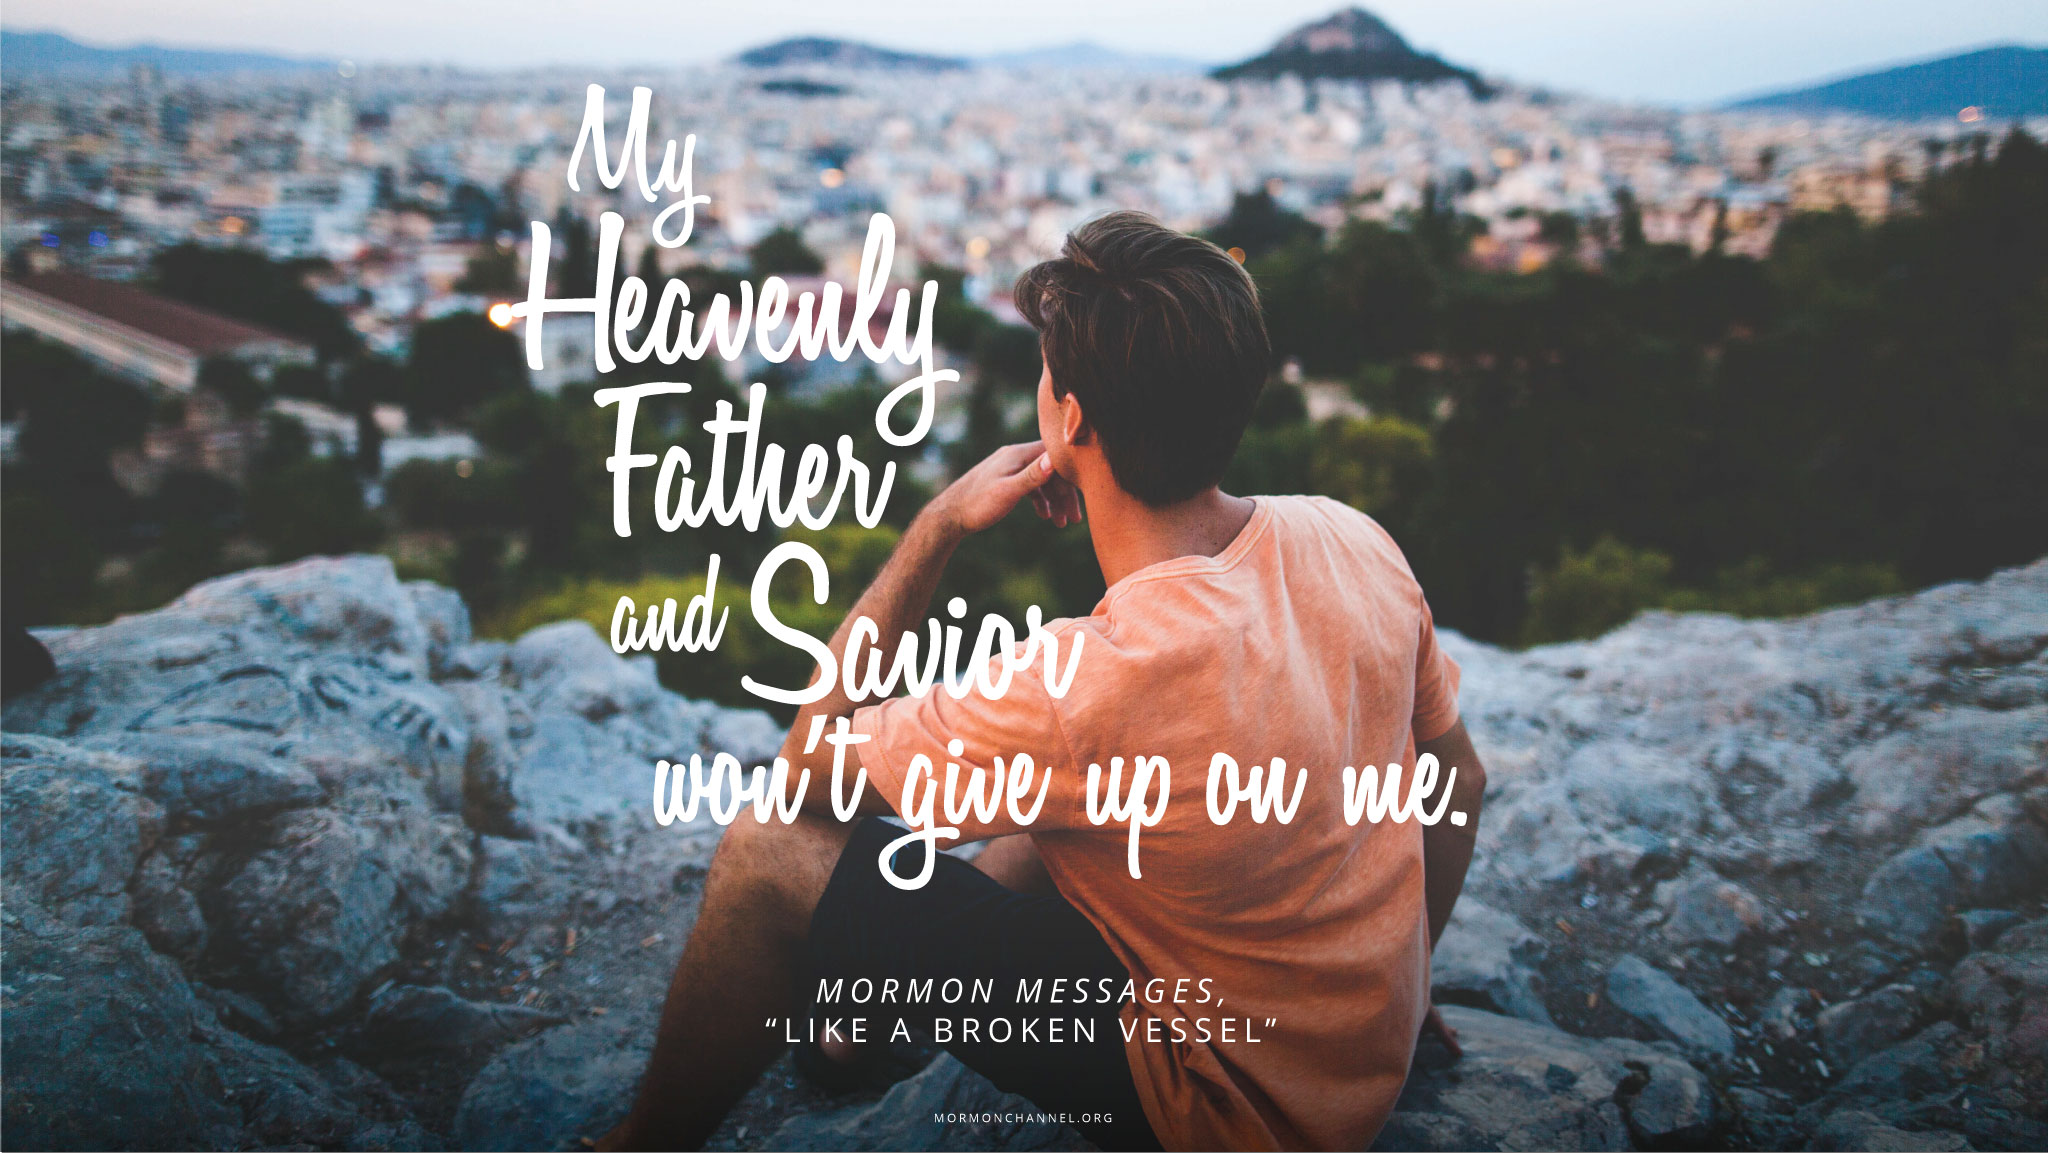 Daily Quote God Wont Give Up On Me Mormon Channel